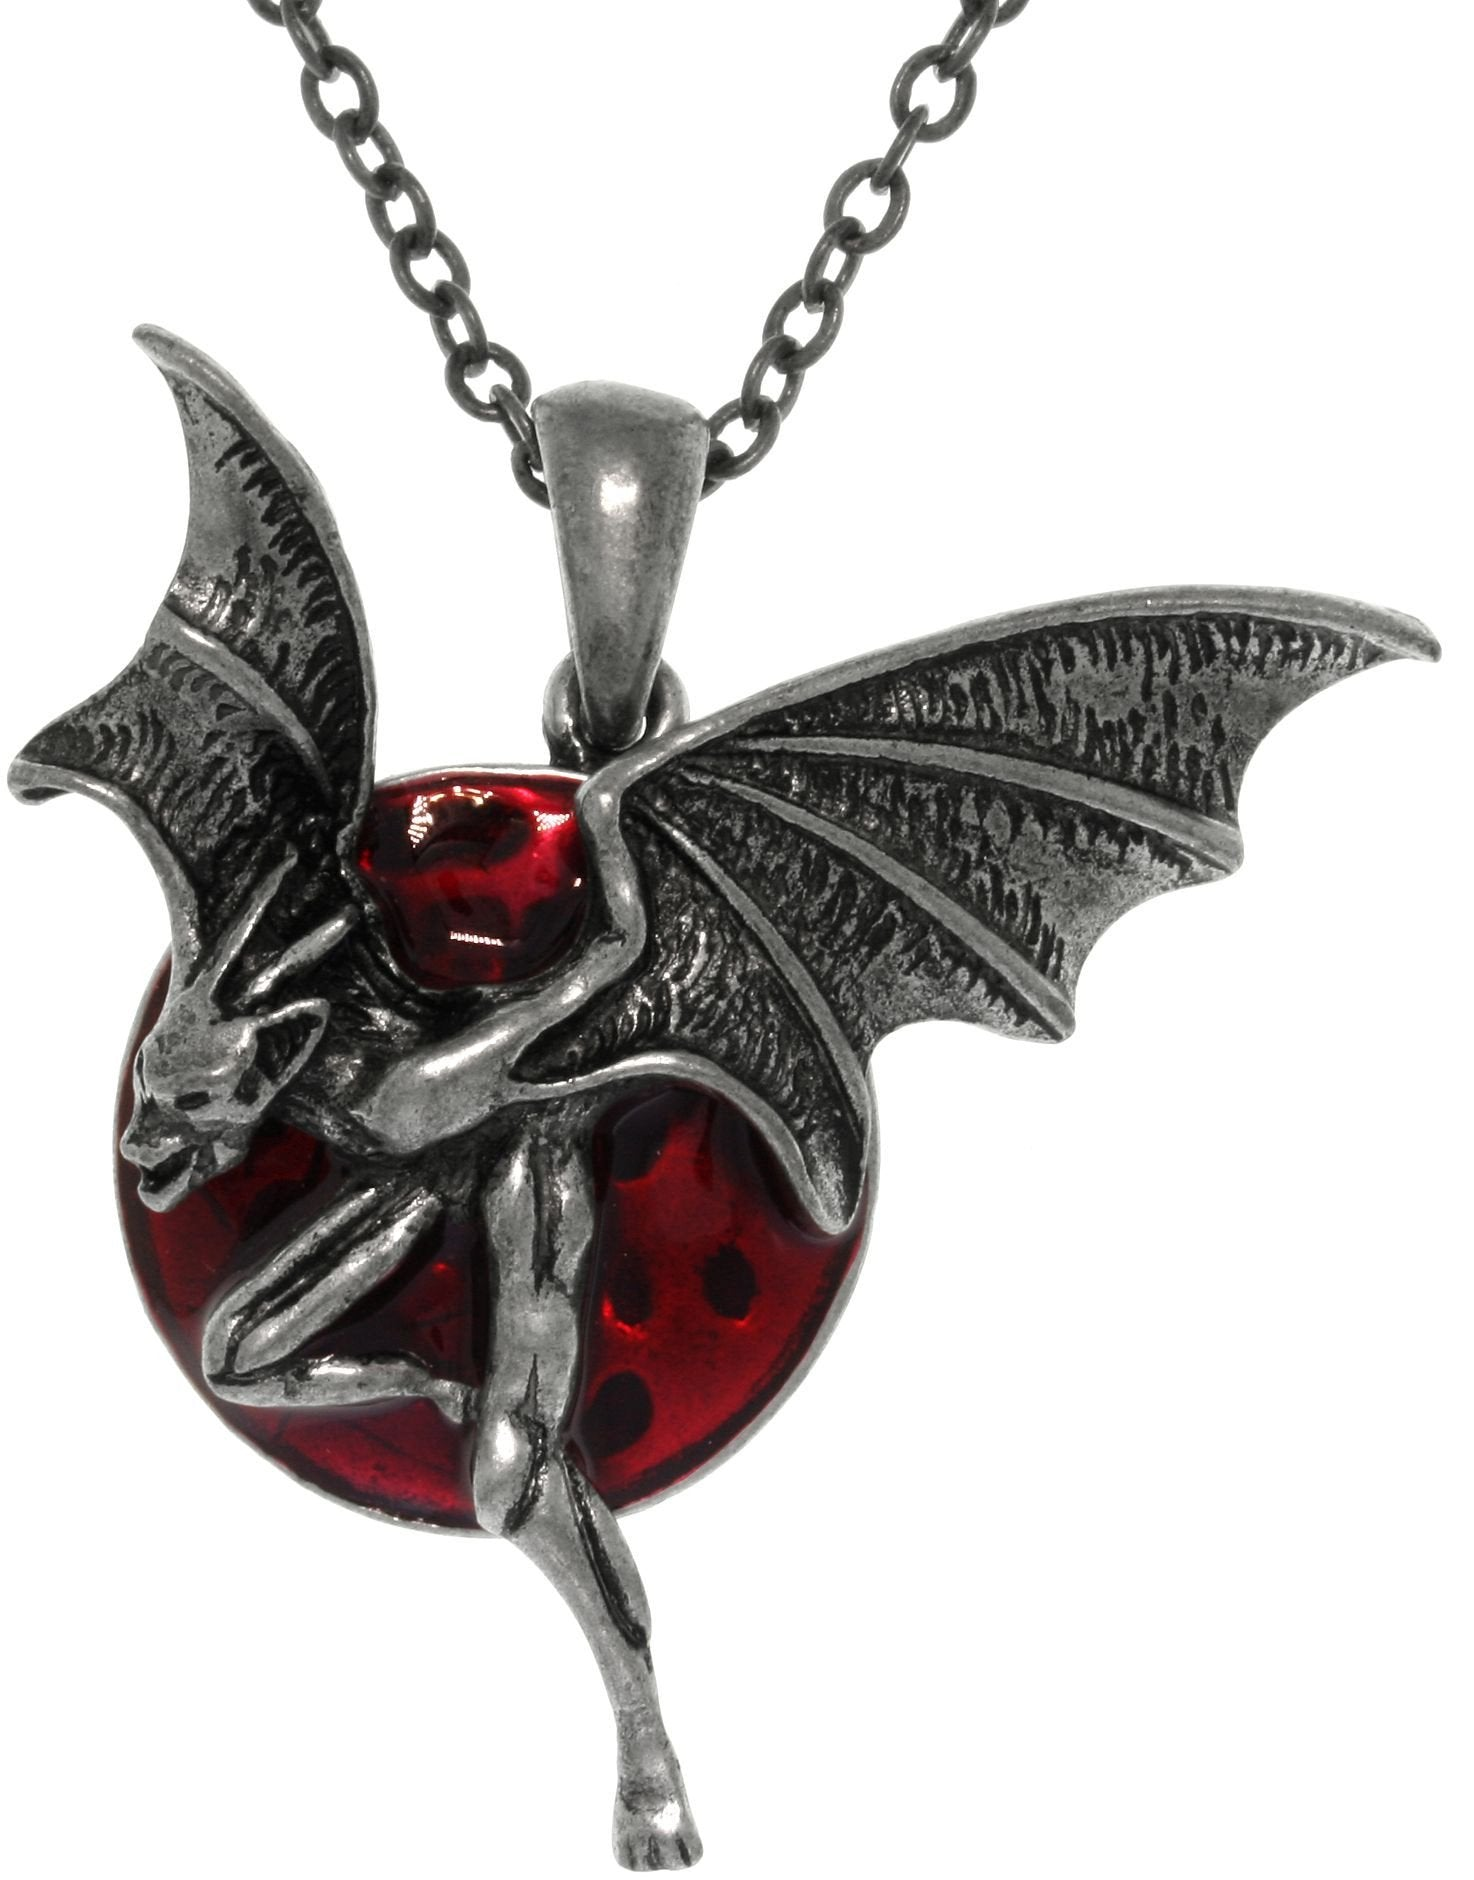 Jewelry Trends Pewter Red Moon with Creature of the Night Pendant on Chain Necklace